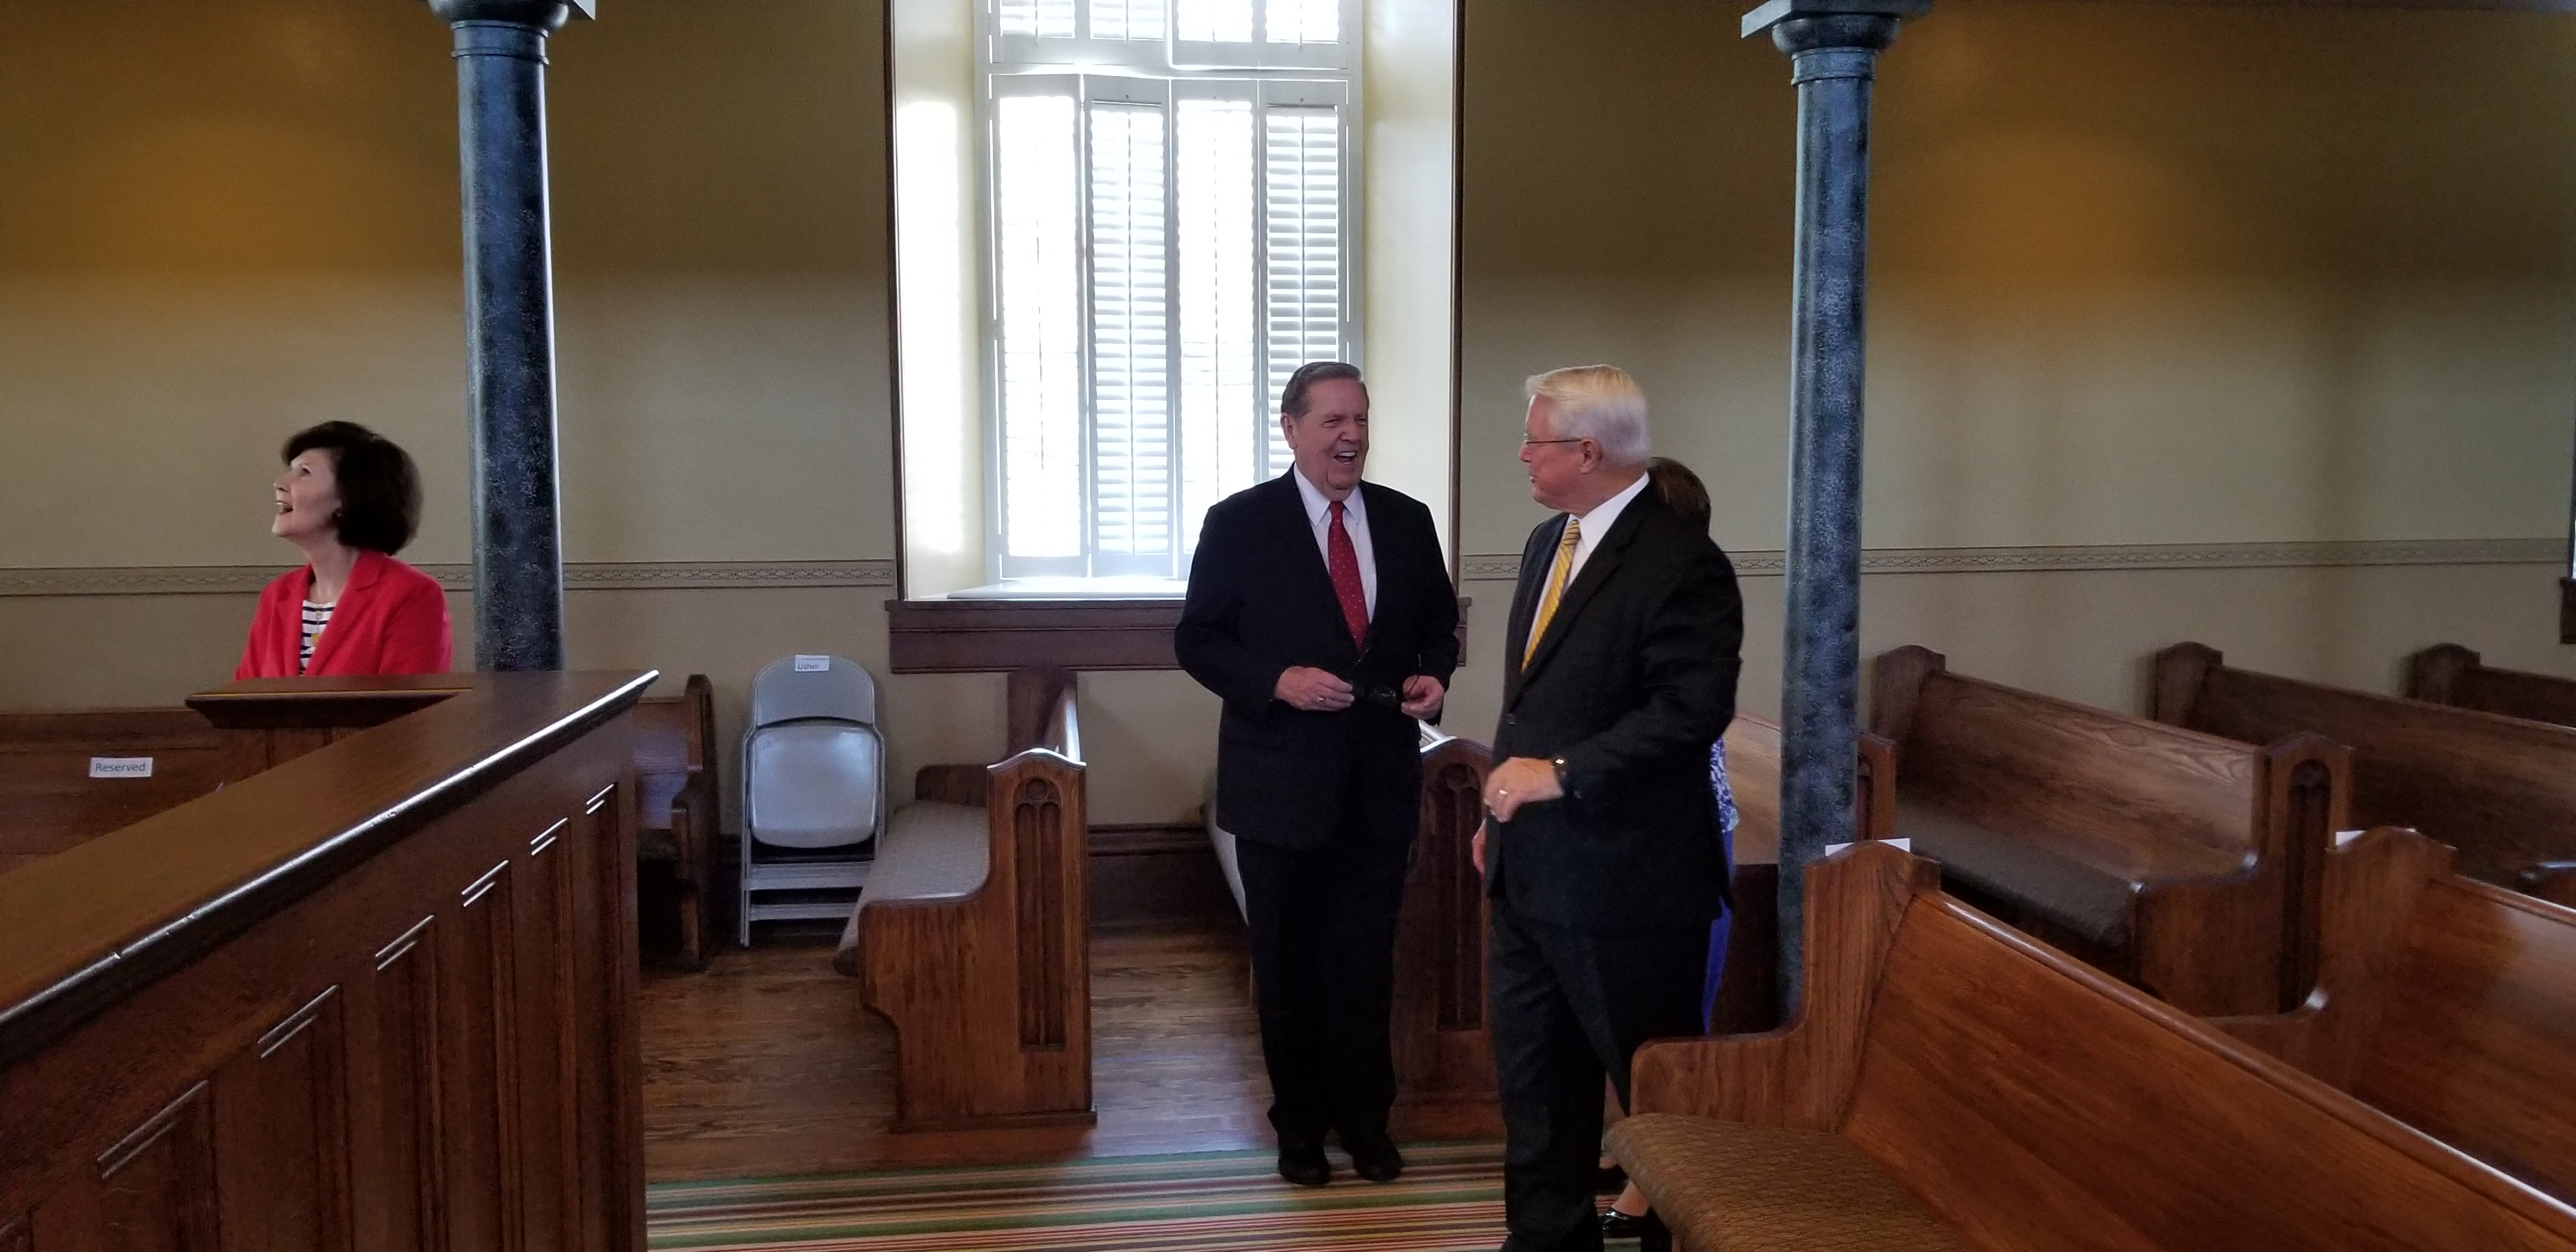 Elder Jeffrey R. Holland of the Quorum of the Twelve Apostles, center, visits with Bishop Dean M. Davies, right, first counselor in the Presiding Bishop, inside the St. George Tabernacle during a July 27, 2018, private tour of the building. Sister Patricia Holland, left, looks above to the tabernacle's rostrum and balconies.